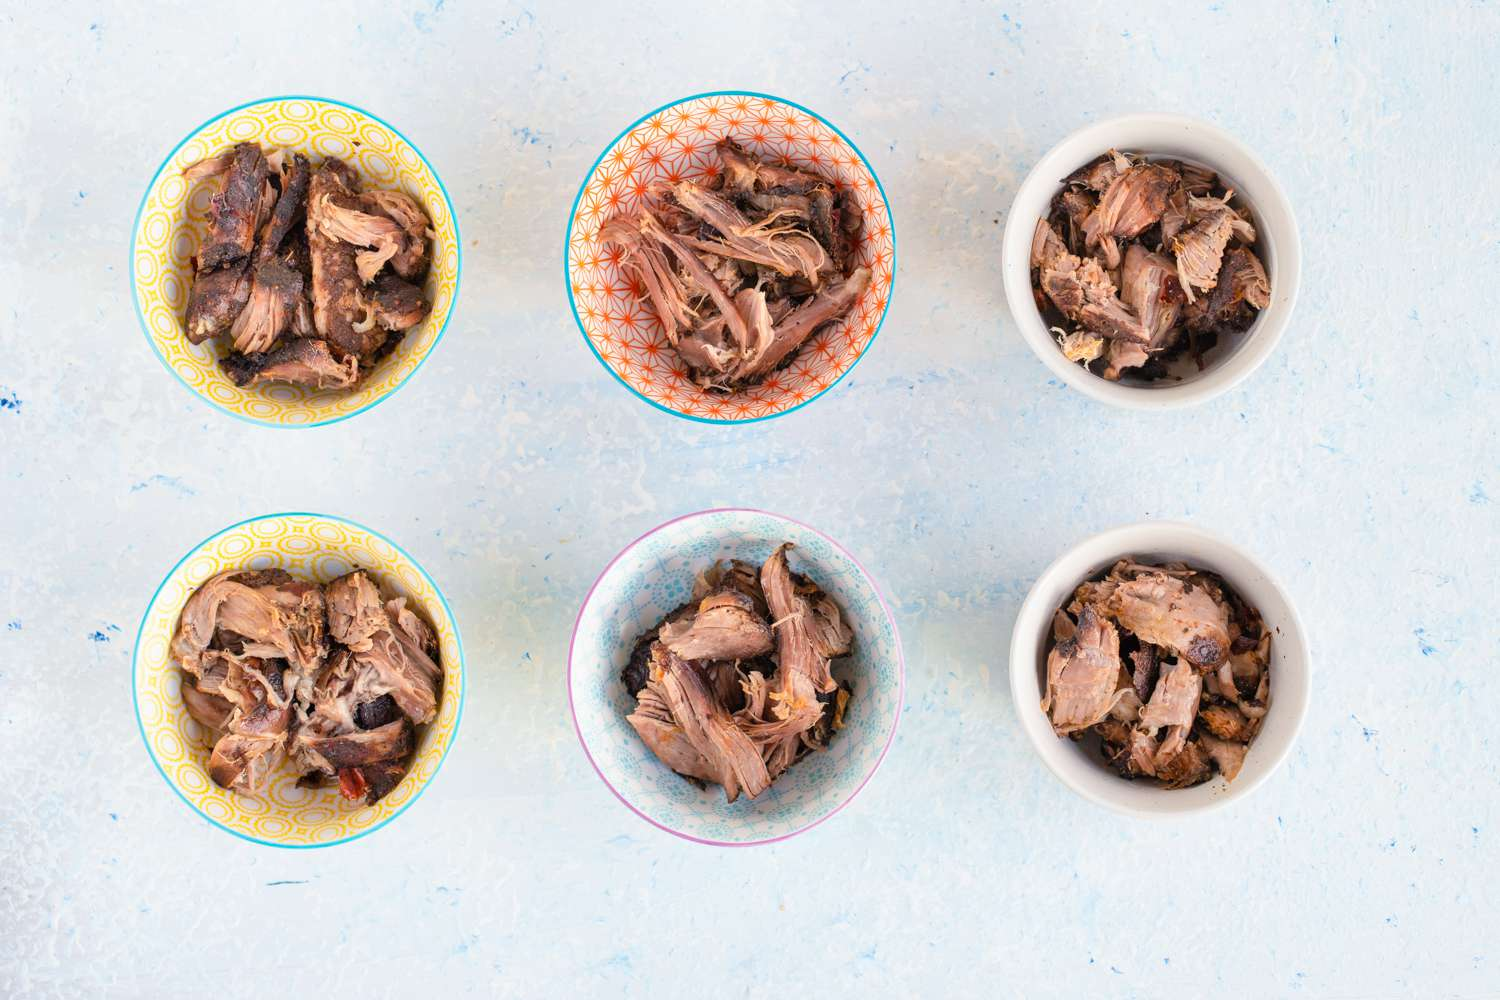 Cooked birria beef in bowls